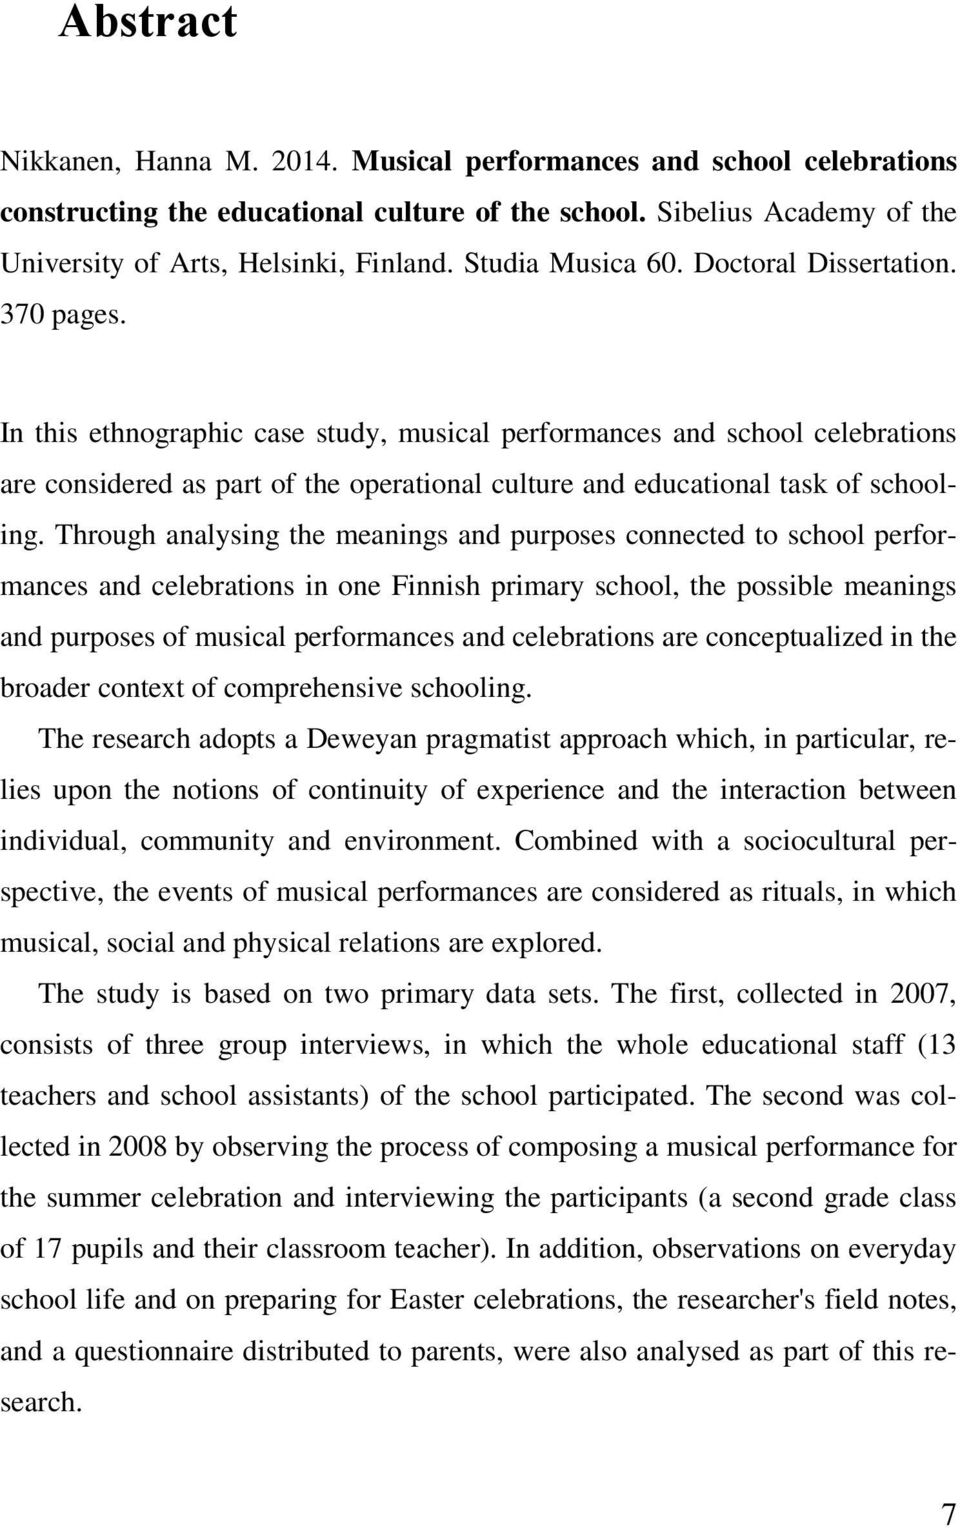 In this ethnographic case study, musical performances and school celebrations are considered as part of the operational culture and educational task of schooling.